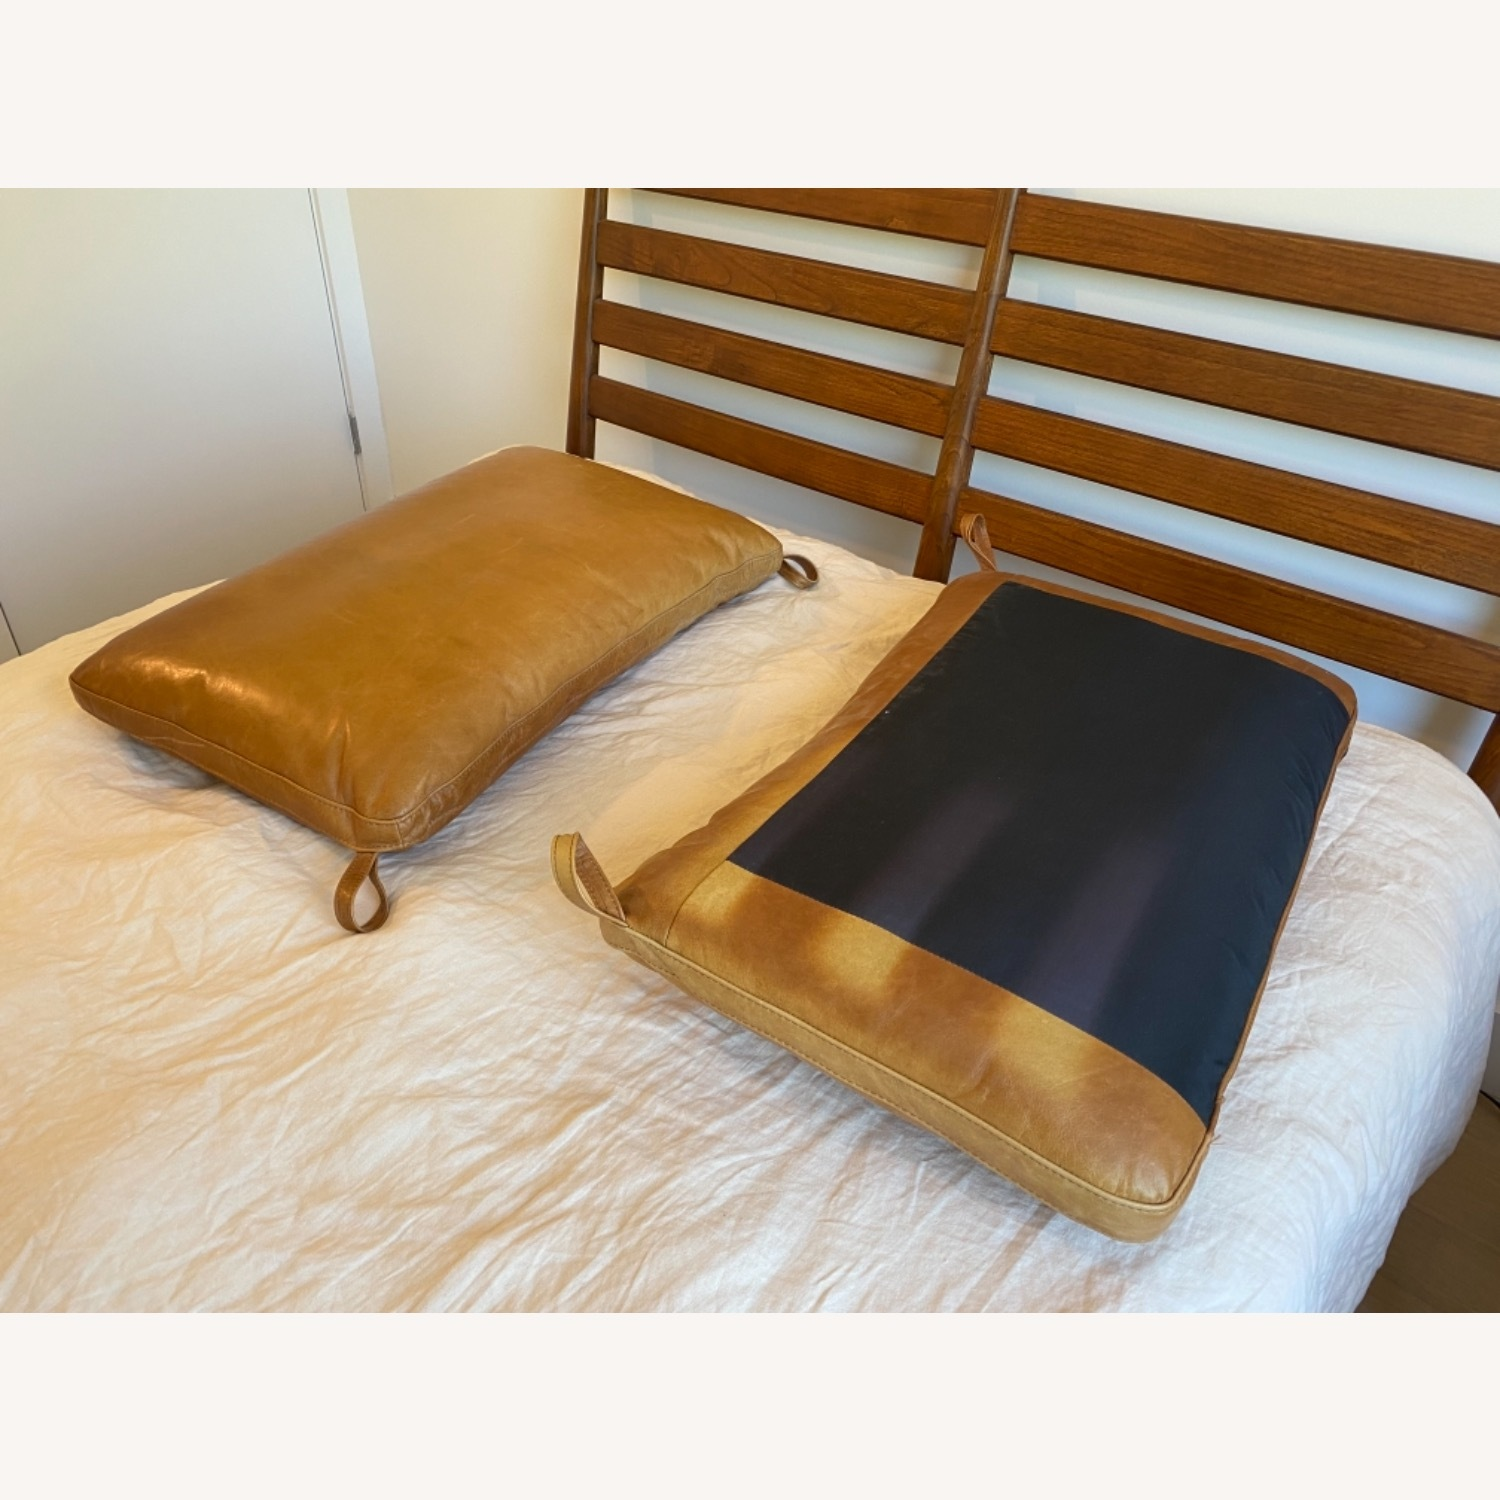 West Elm Arne Bed with Leather Cushions - image-2